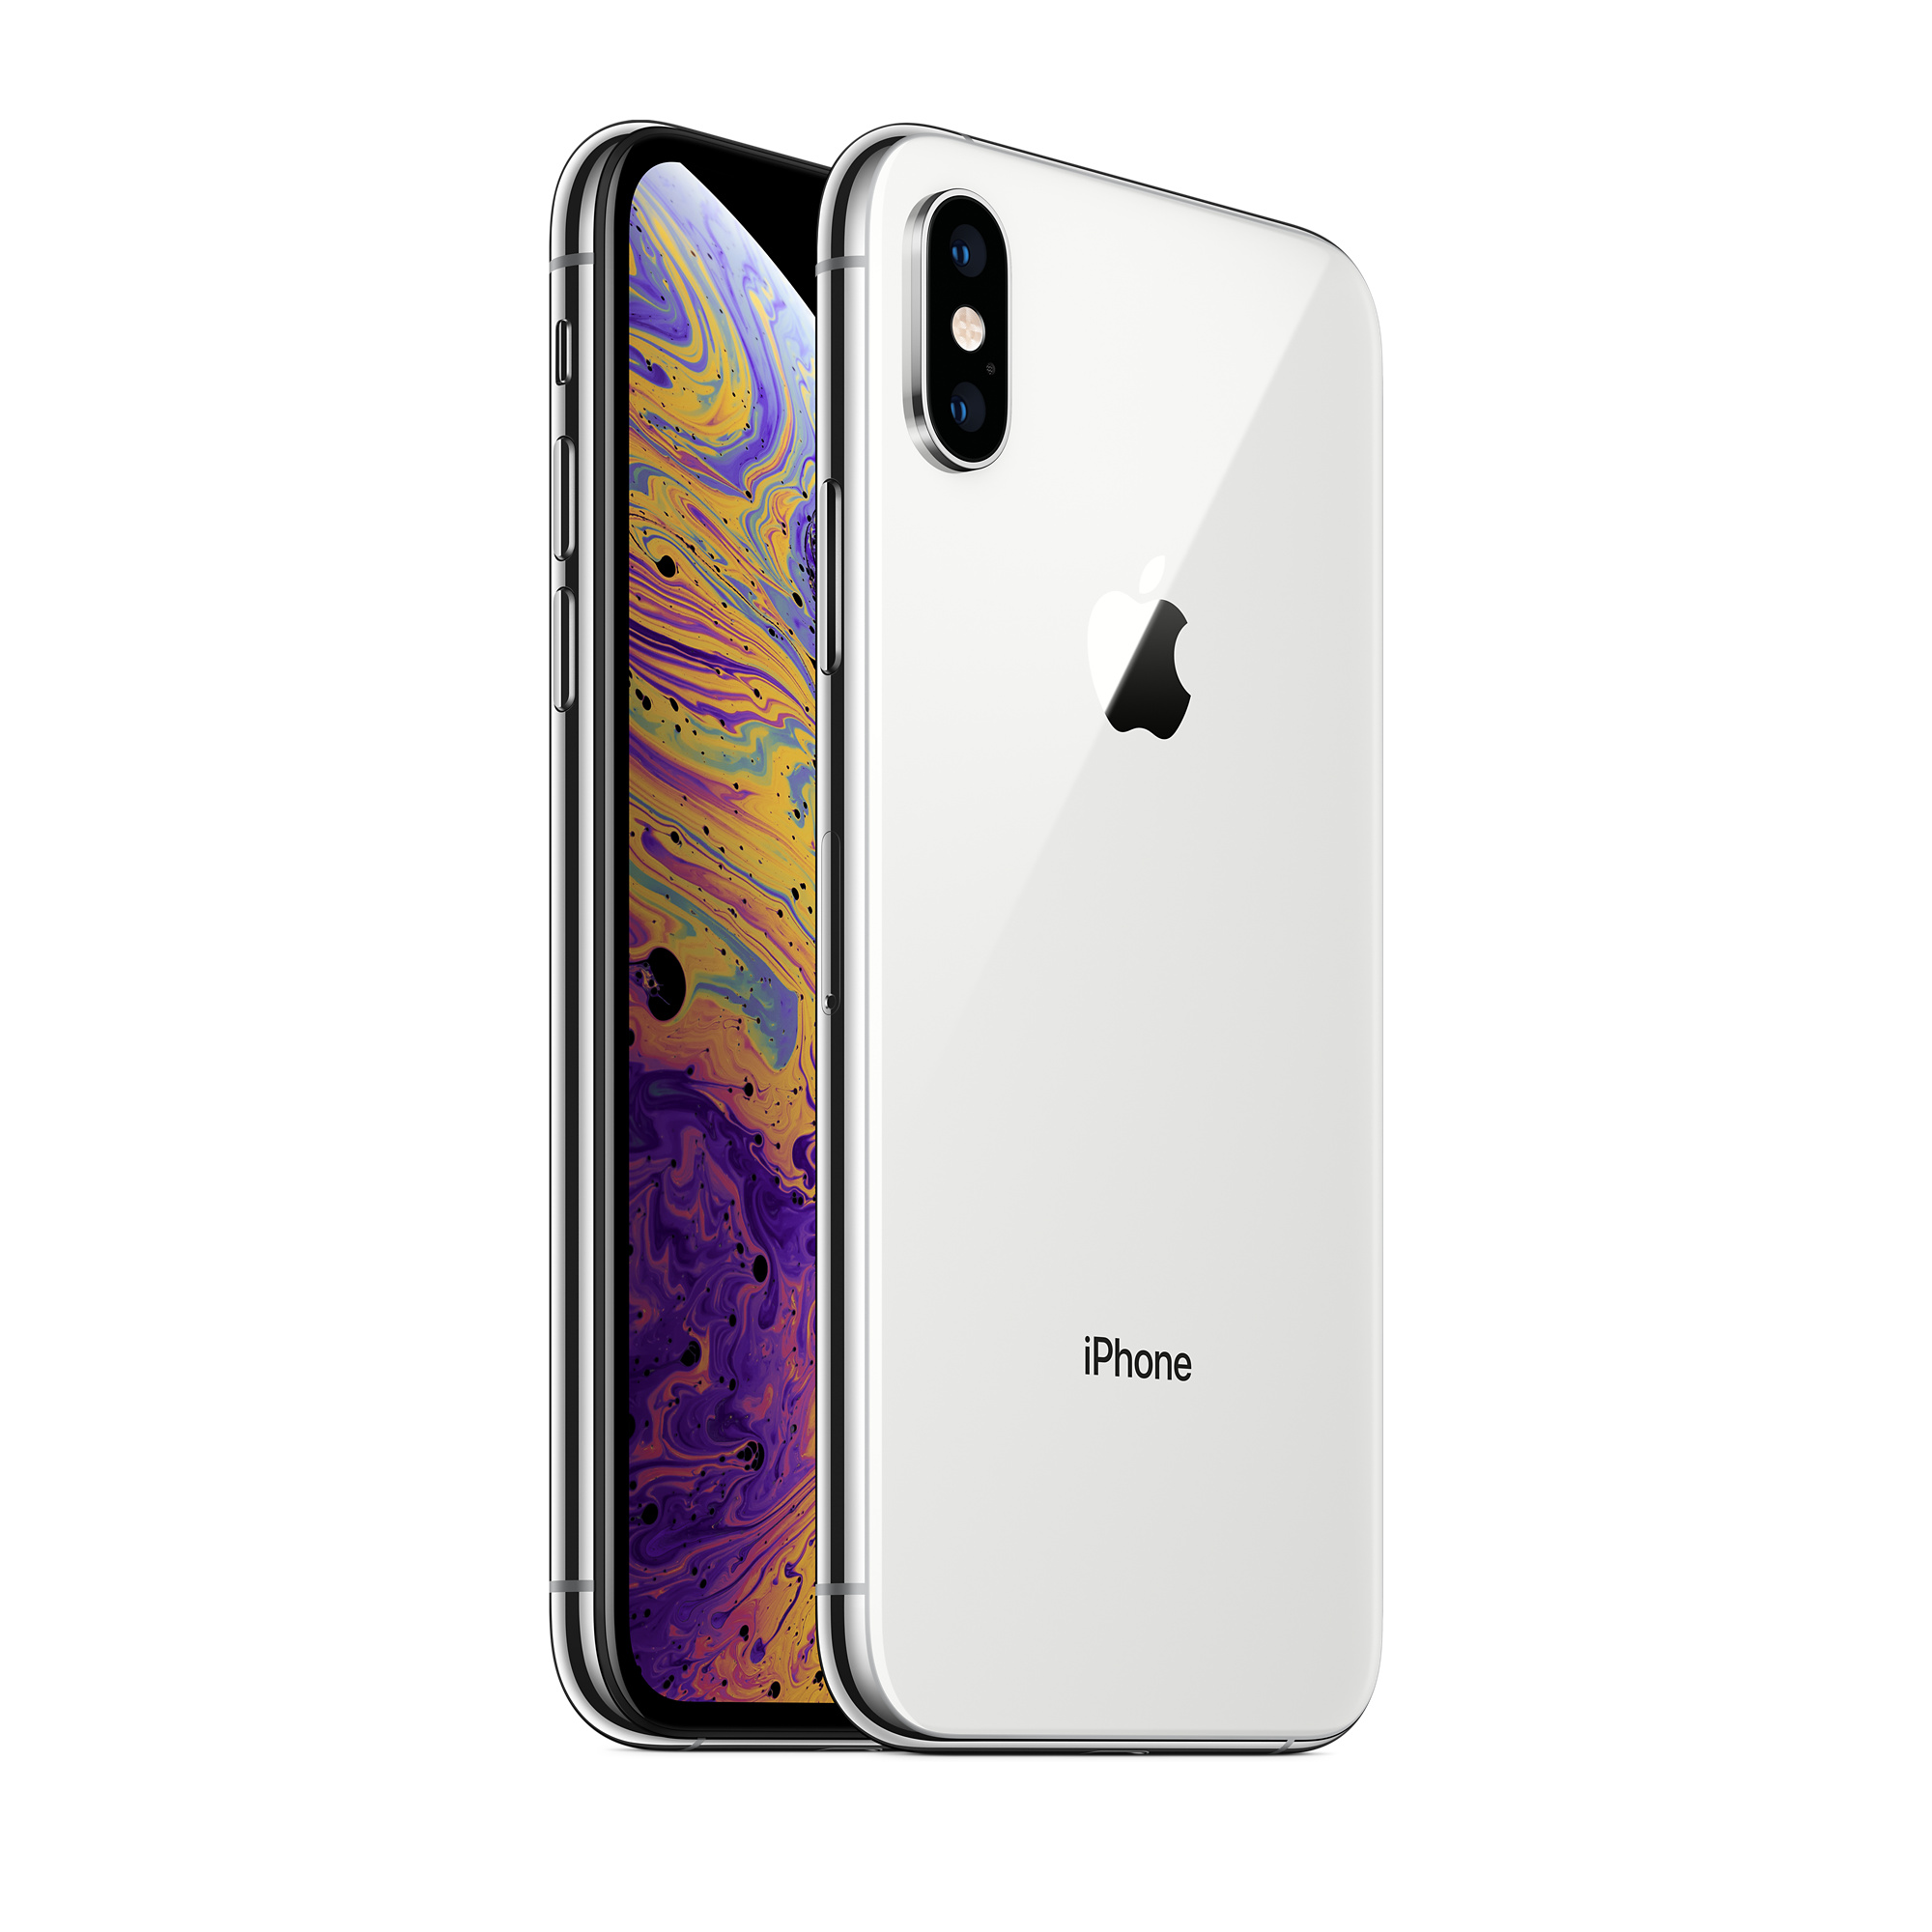 Refurbished iPhone XS 256GB - Silver (Unlocked) - Apple